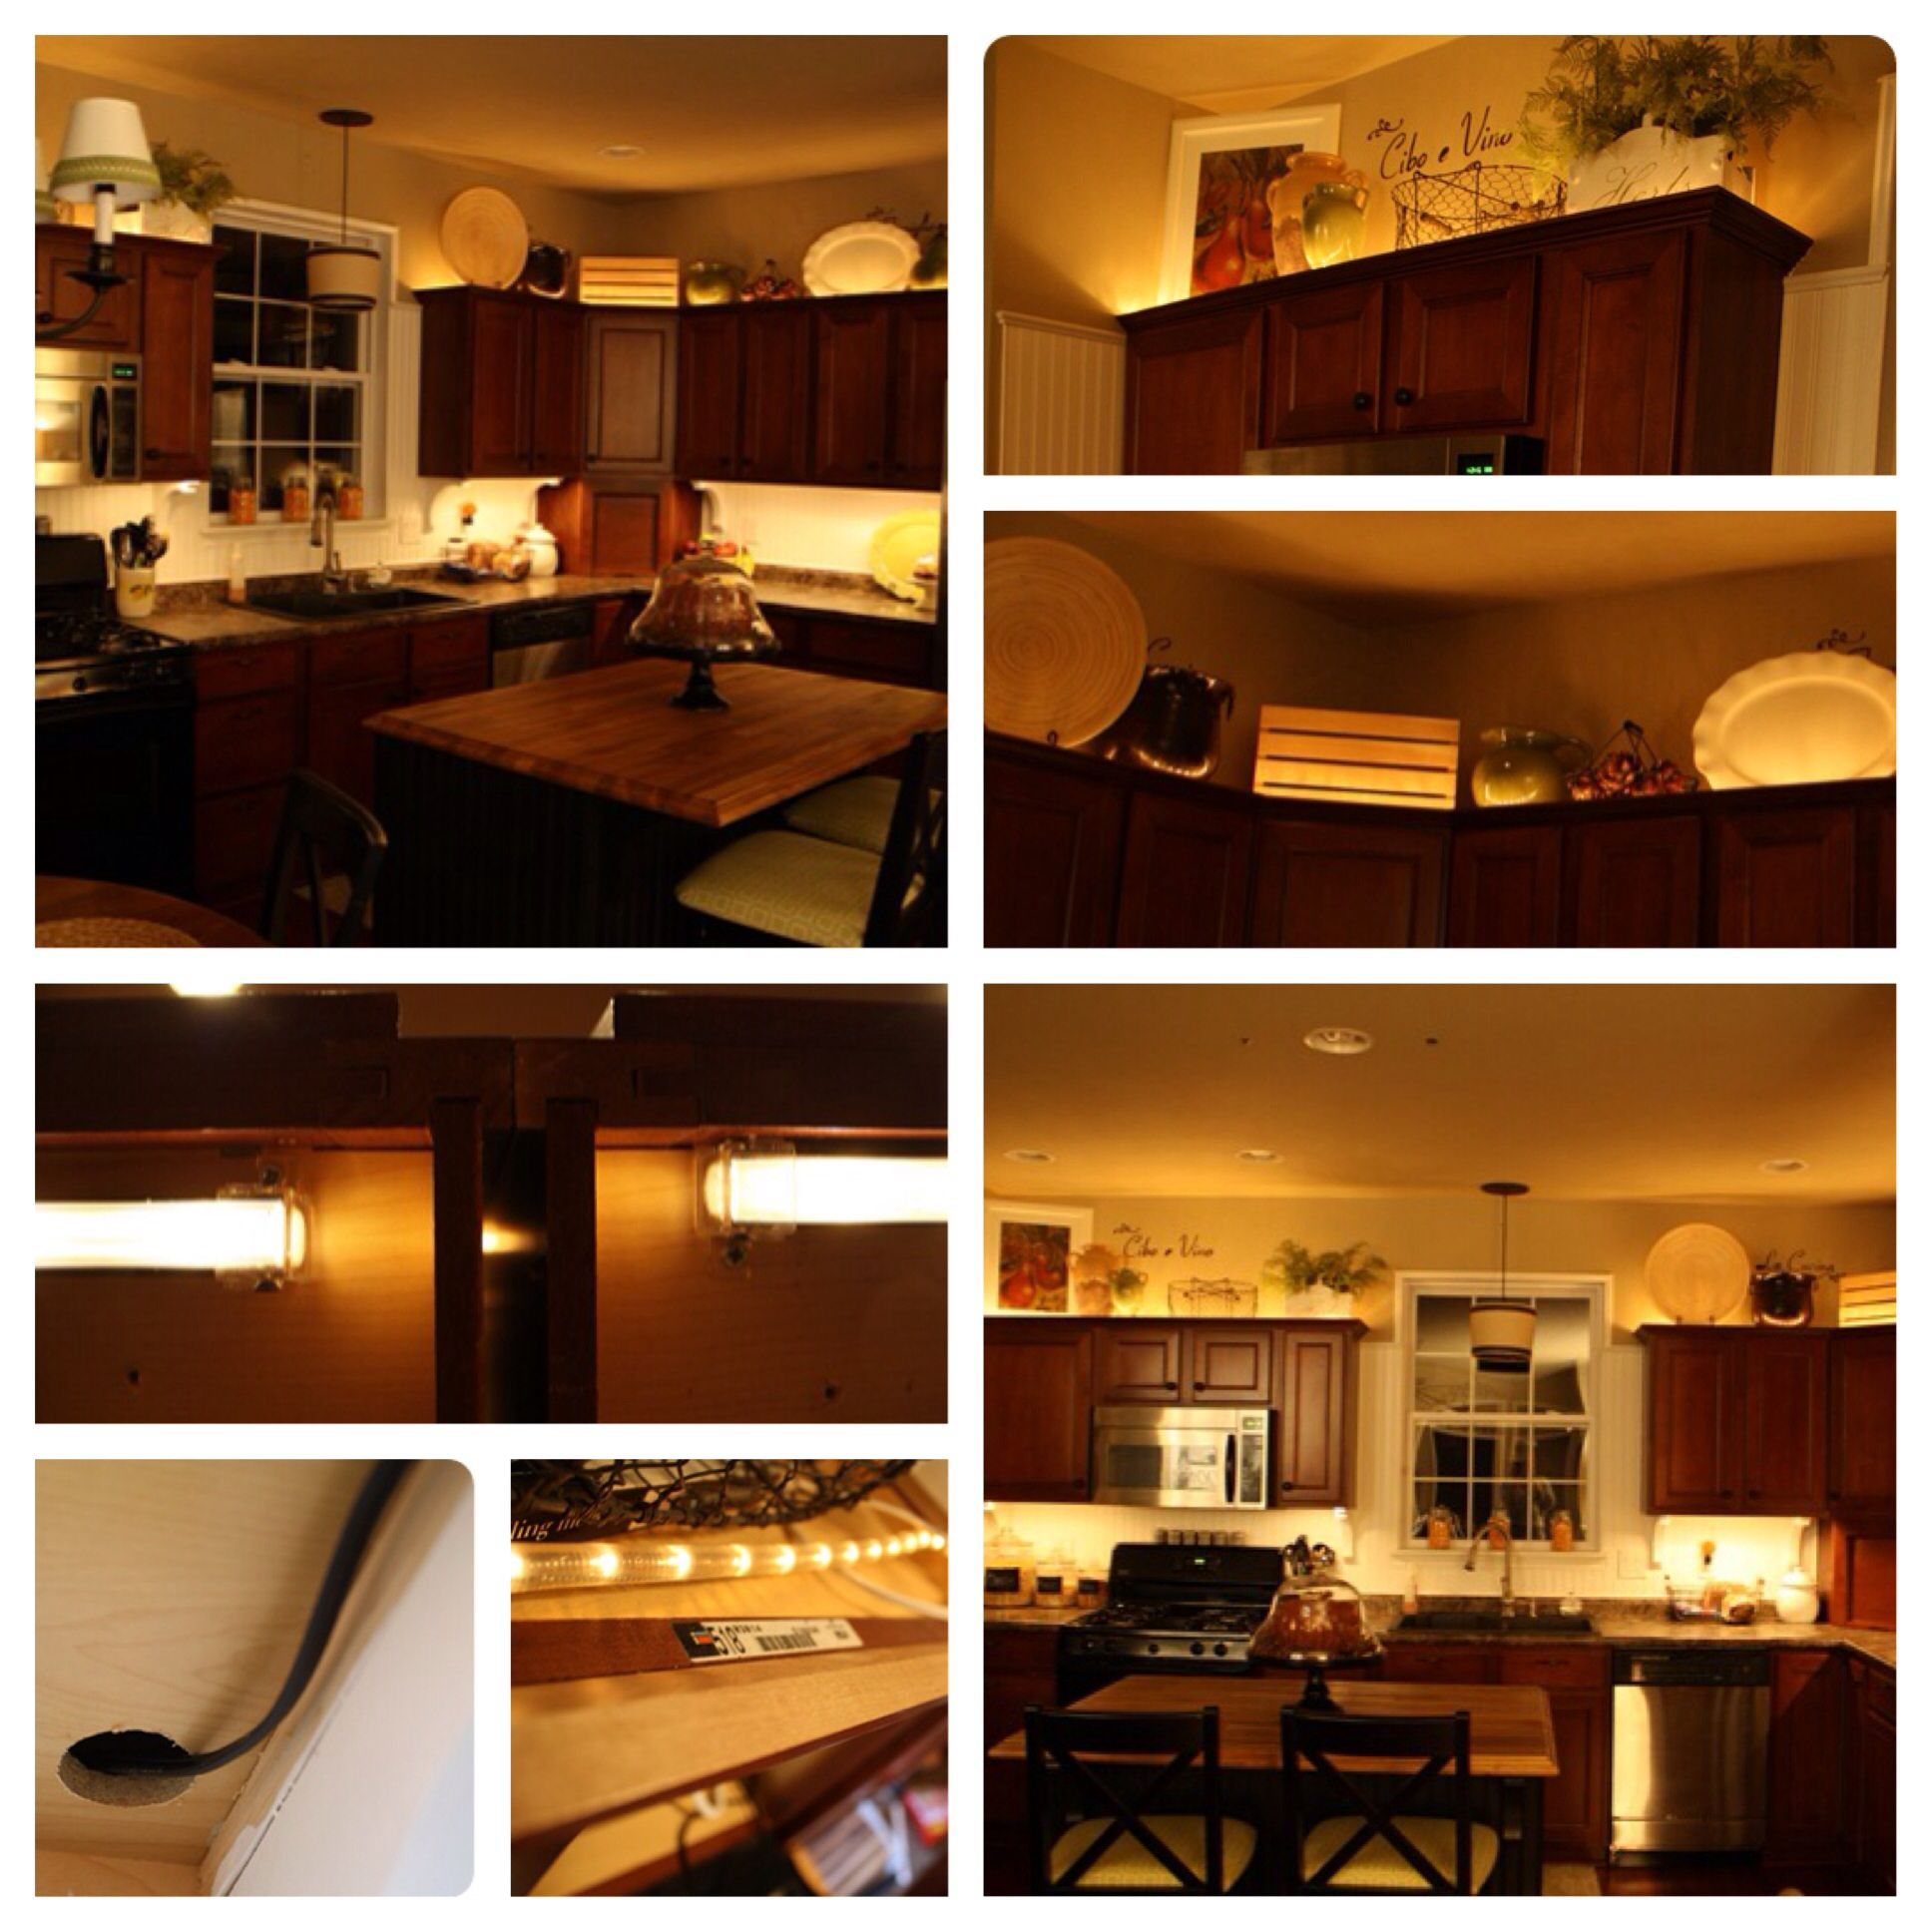 Over Cabinet Lighting For Kitchens: Installing Rope Lighting Above Kitchen Cabinets